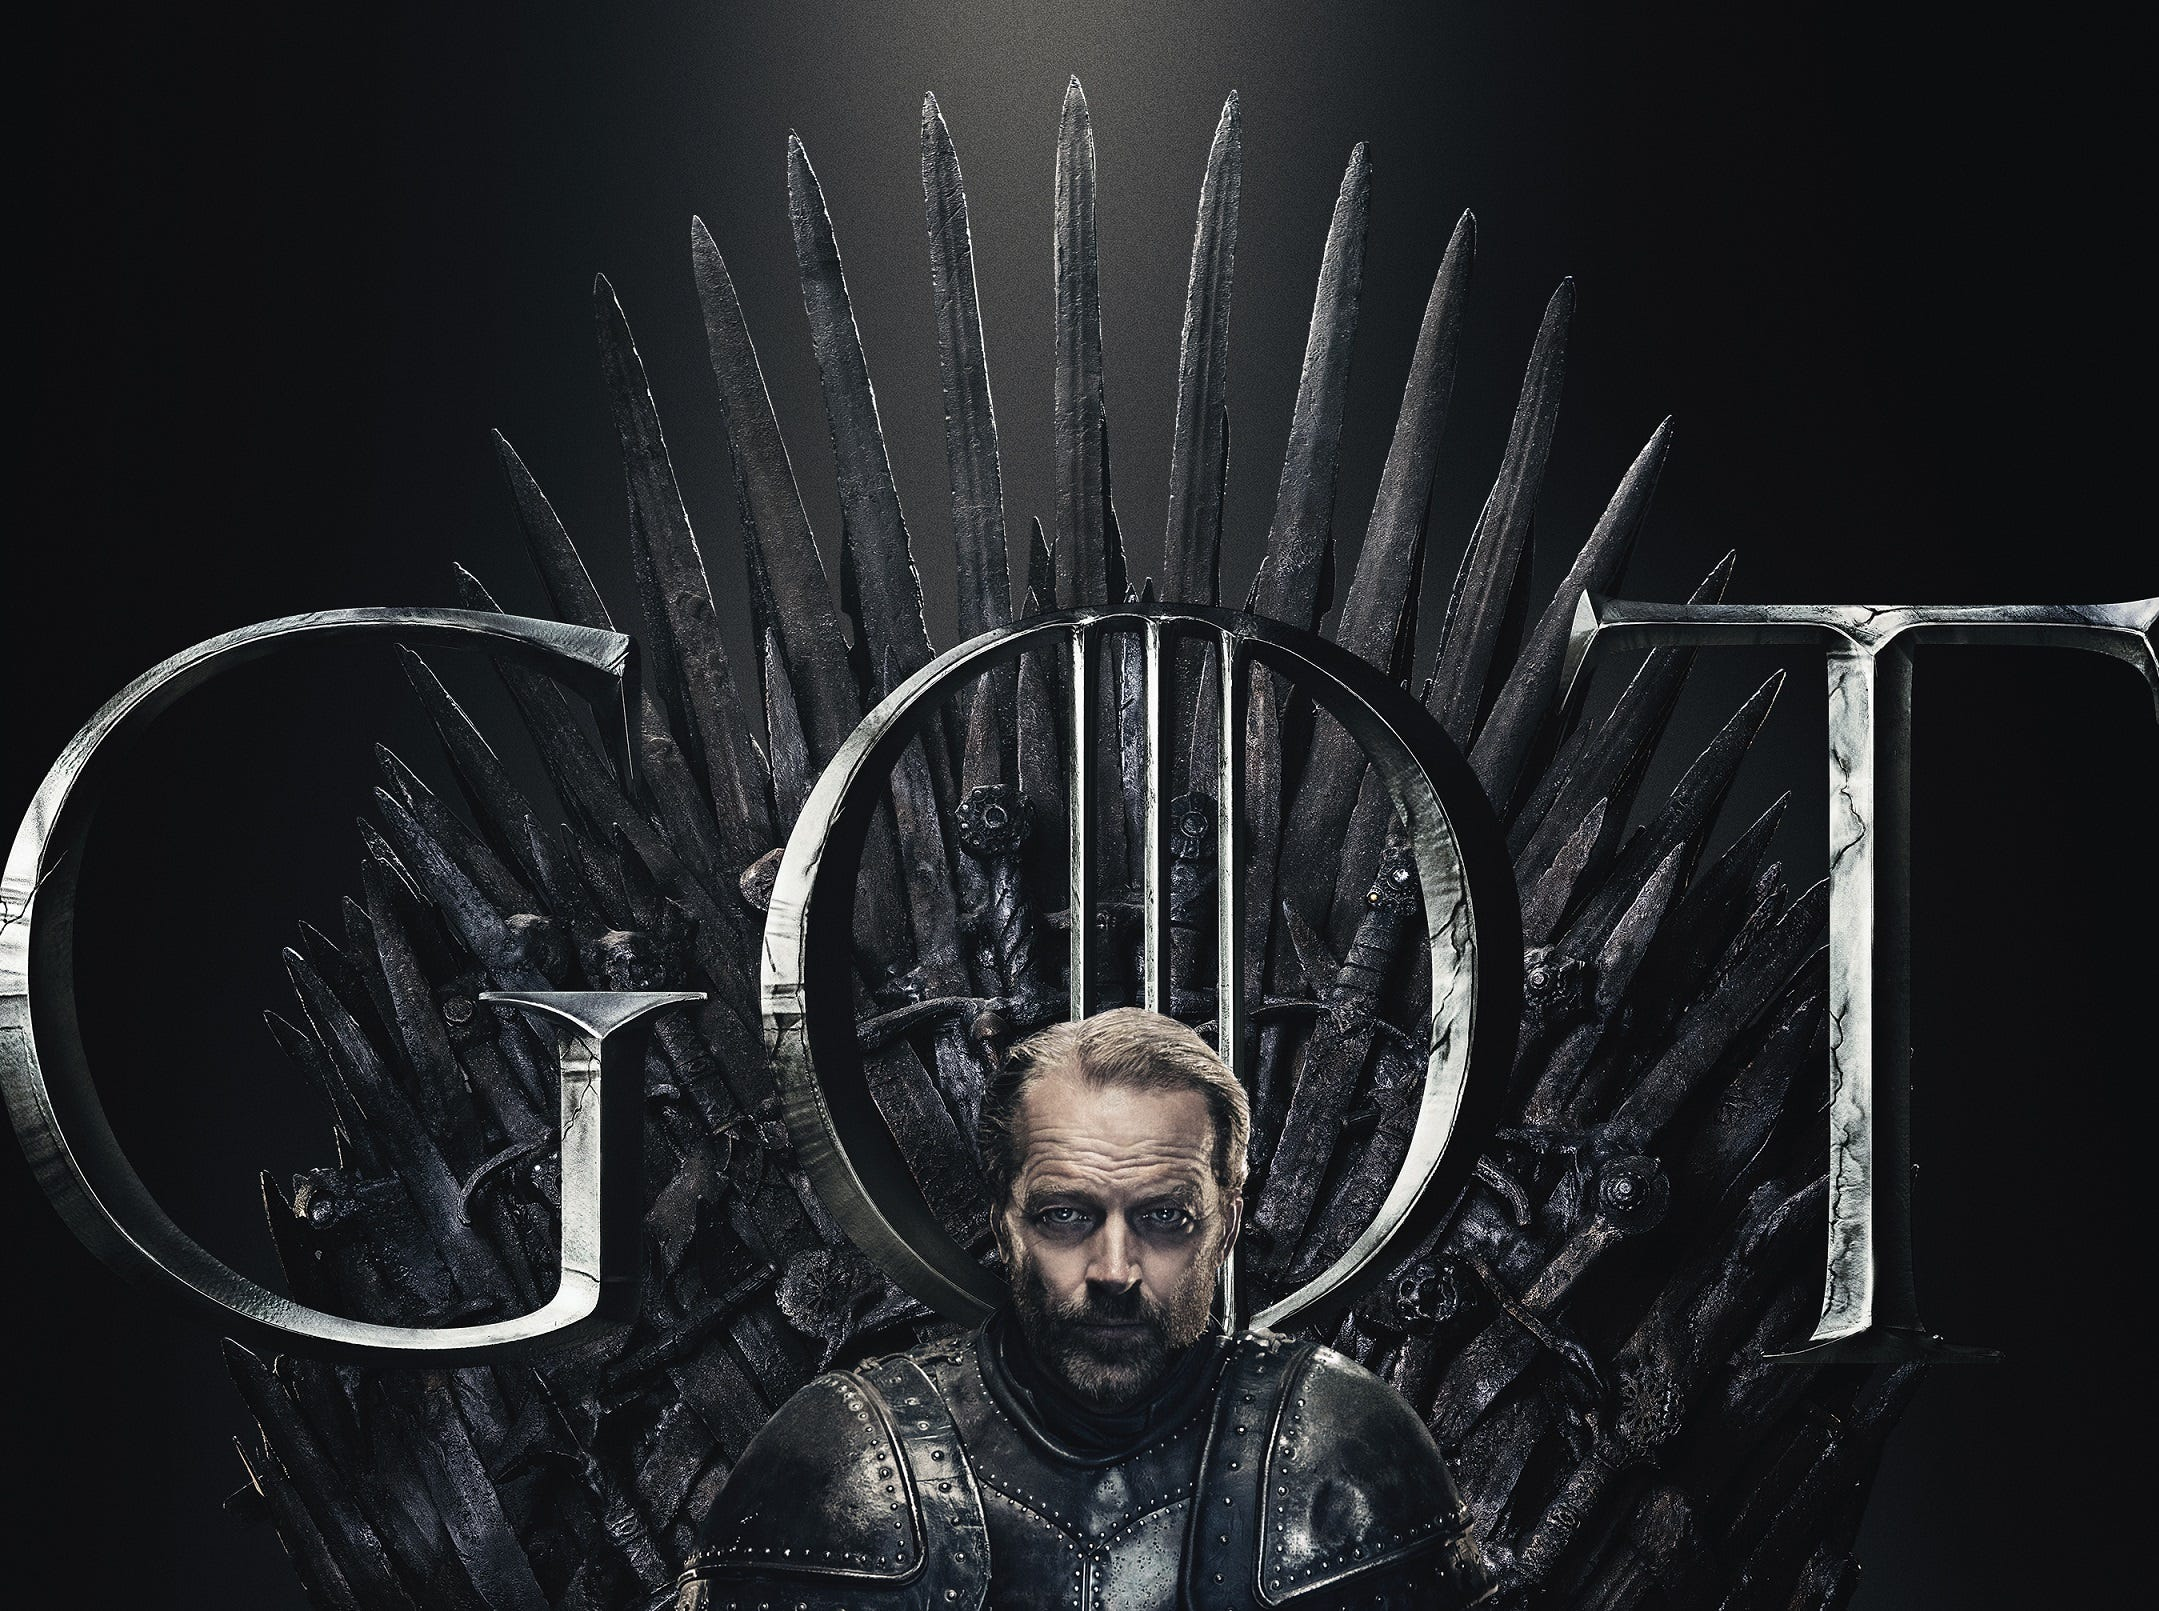 Jorah Mormont (Iain Glen) managed to look the most intense of any of the characters.